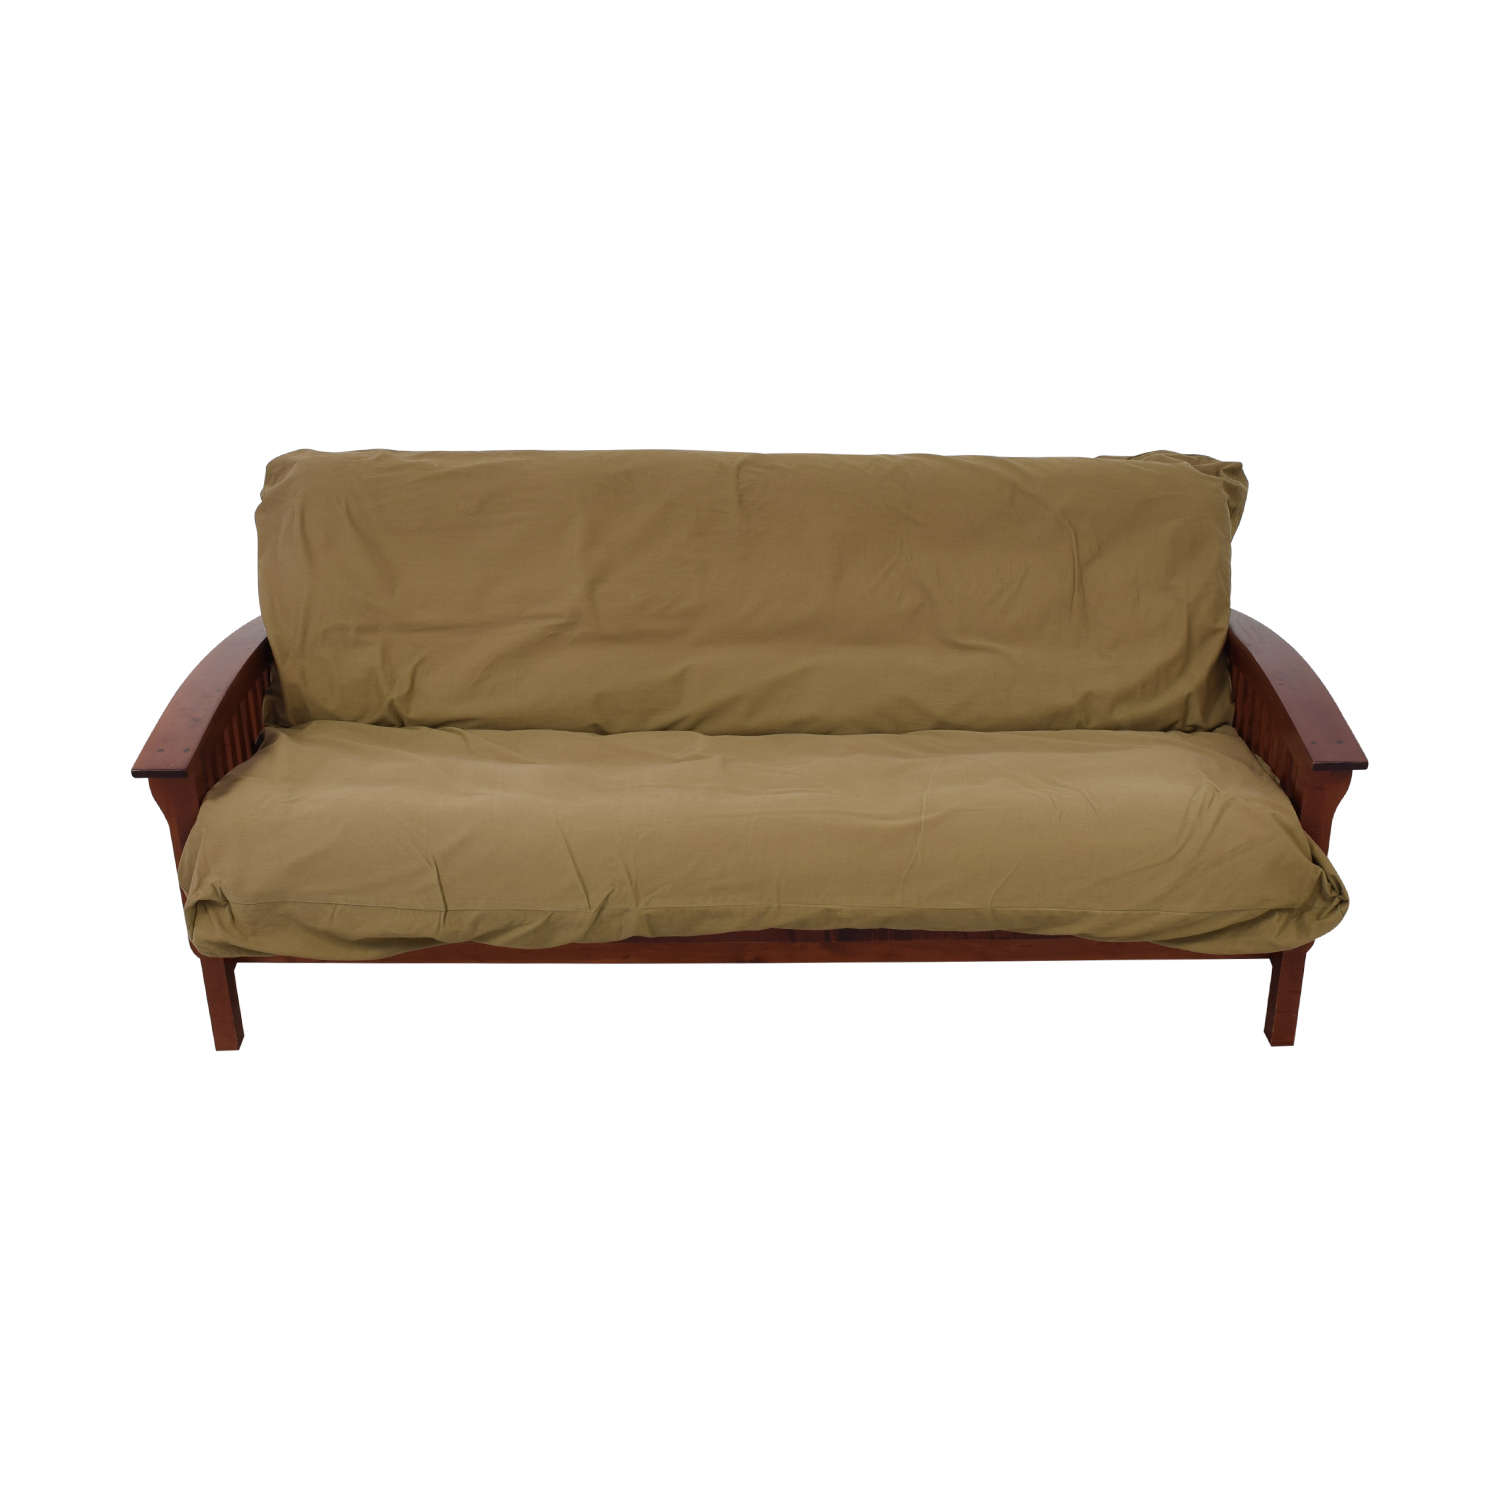 Wood Frame Futon sale